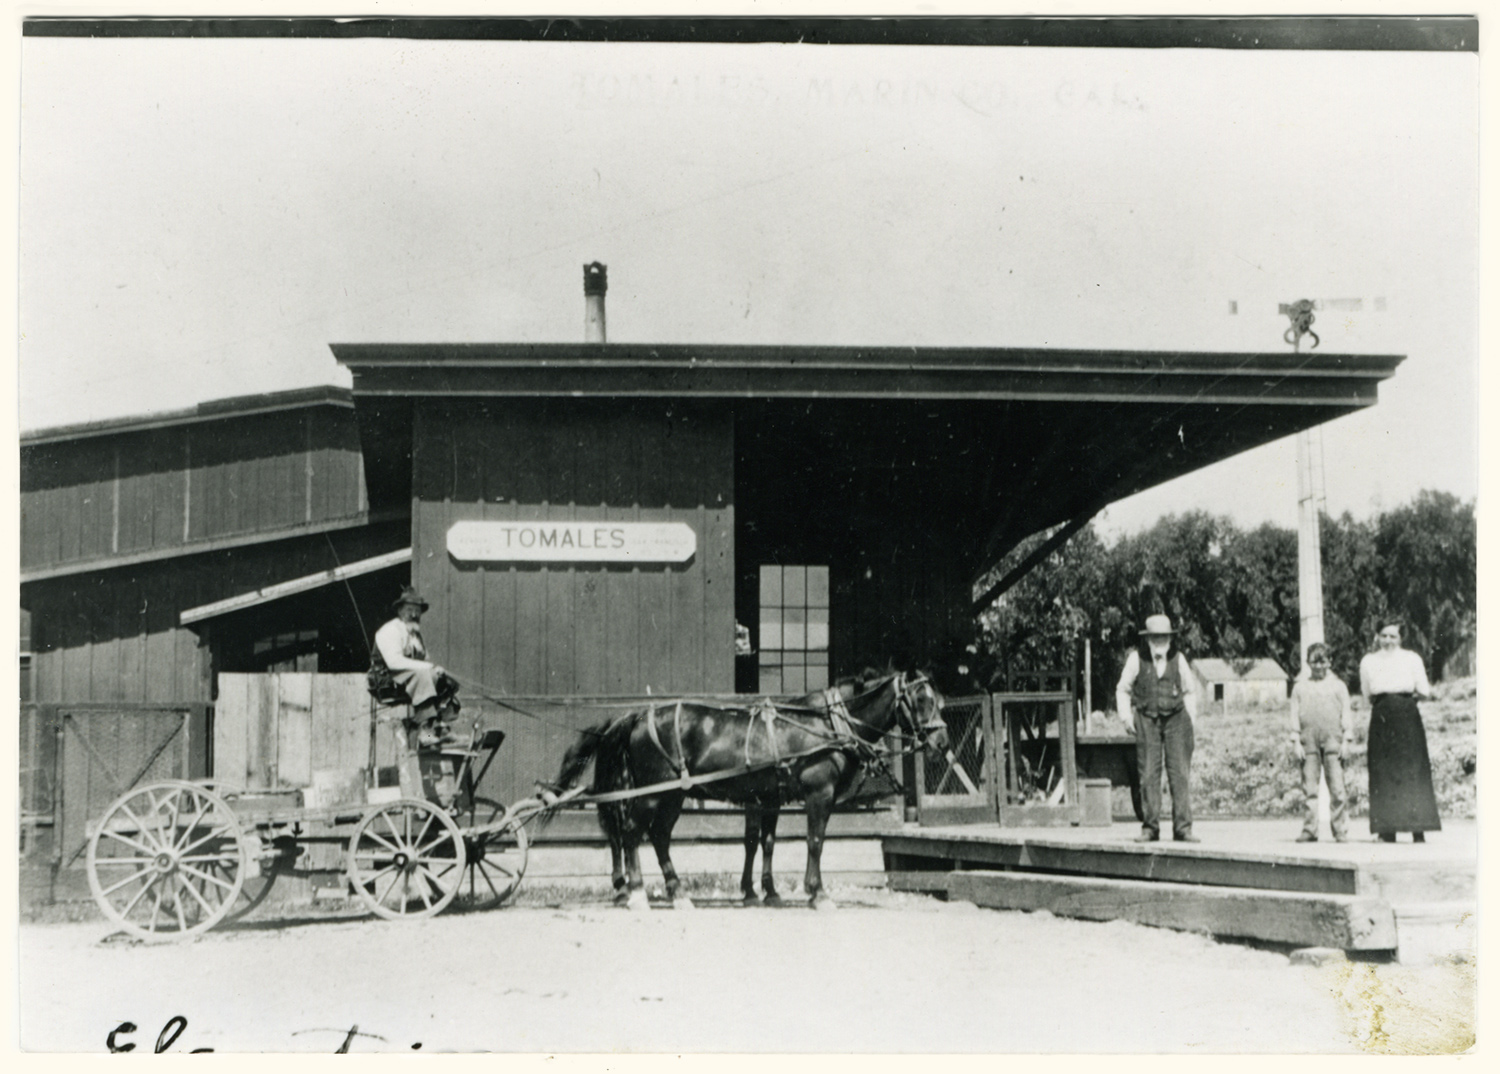 Tomales railroad depot was just west of Carrie Street. Circa 1920 photo by Ella Jorgensen.